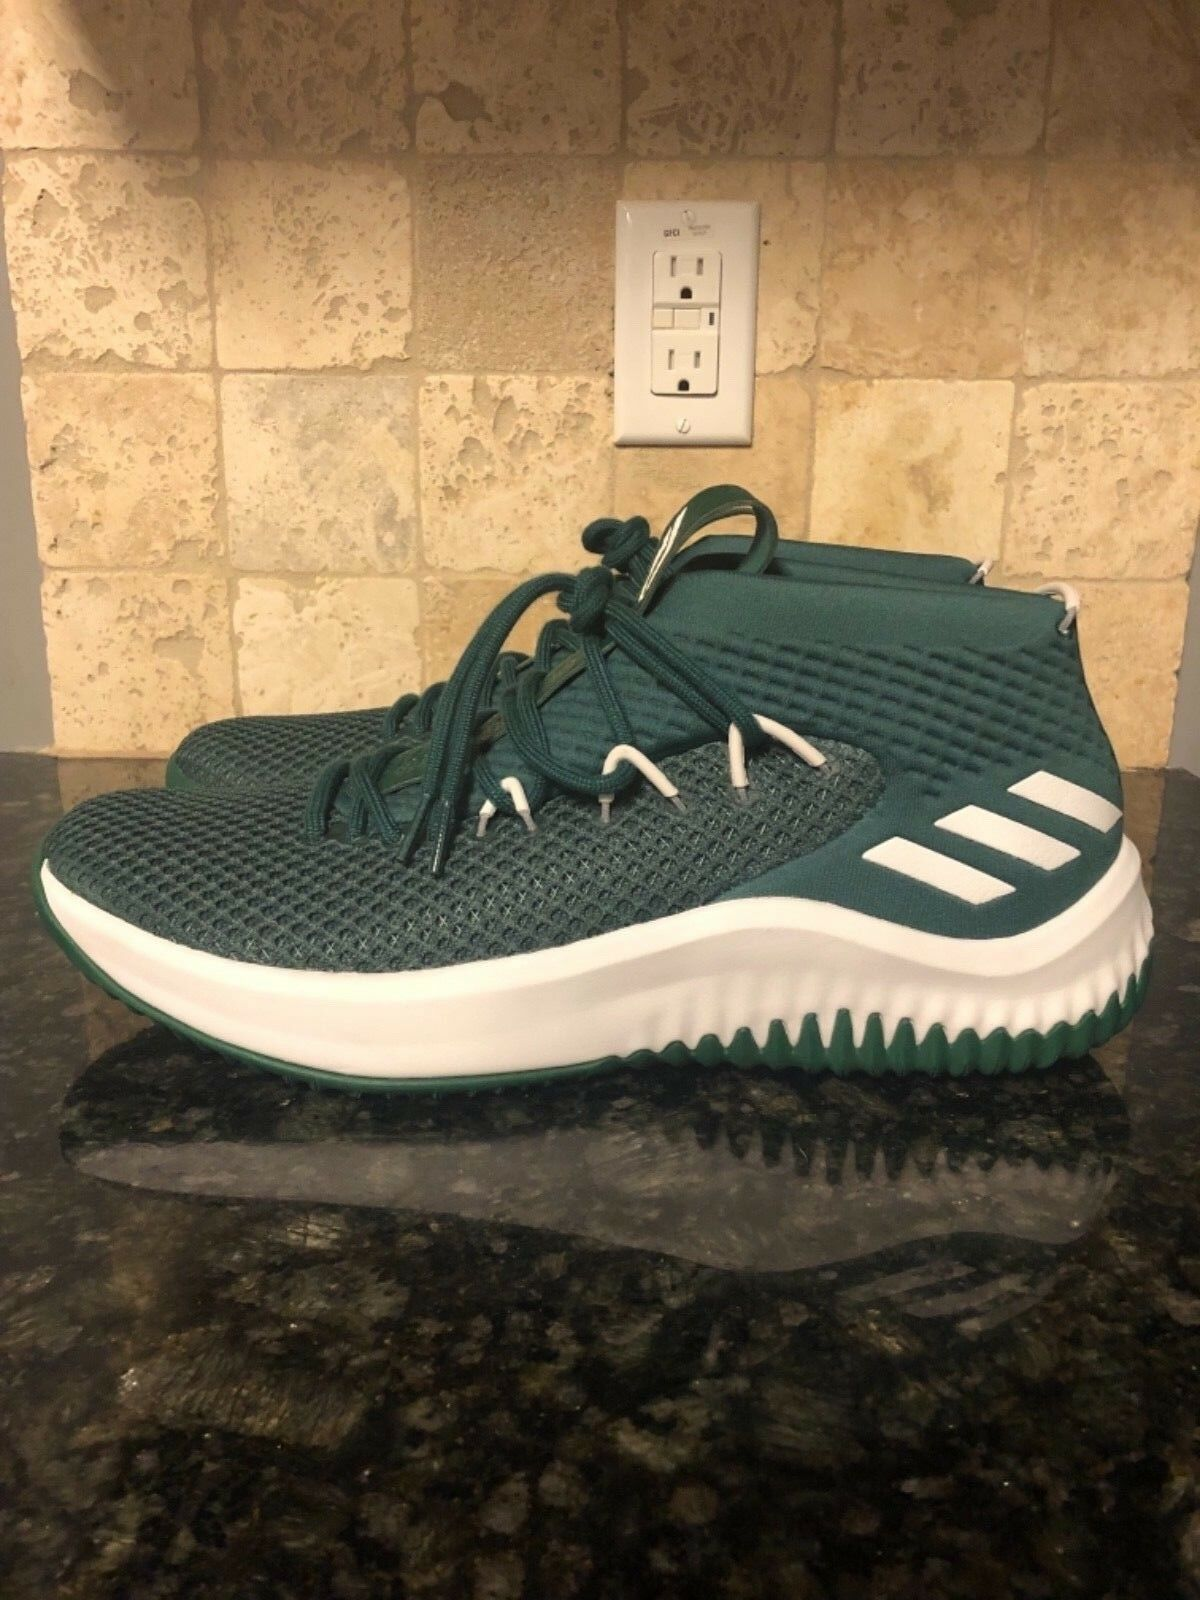 Adidas Men's Dame 4 Team Exclusive Basketball shoes Green White 13 14 B76016